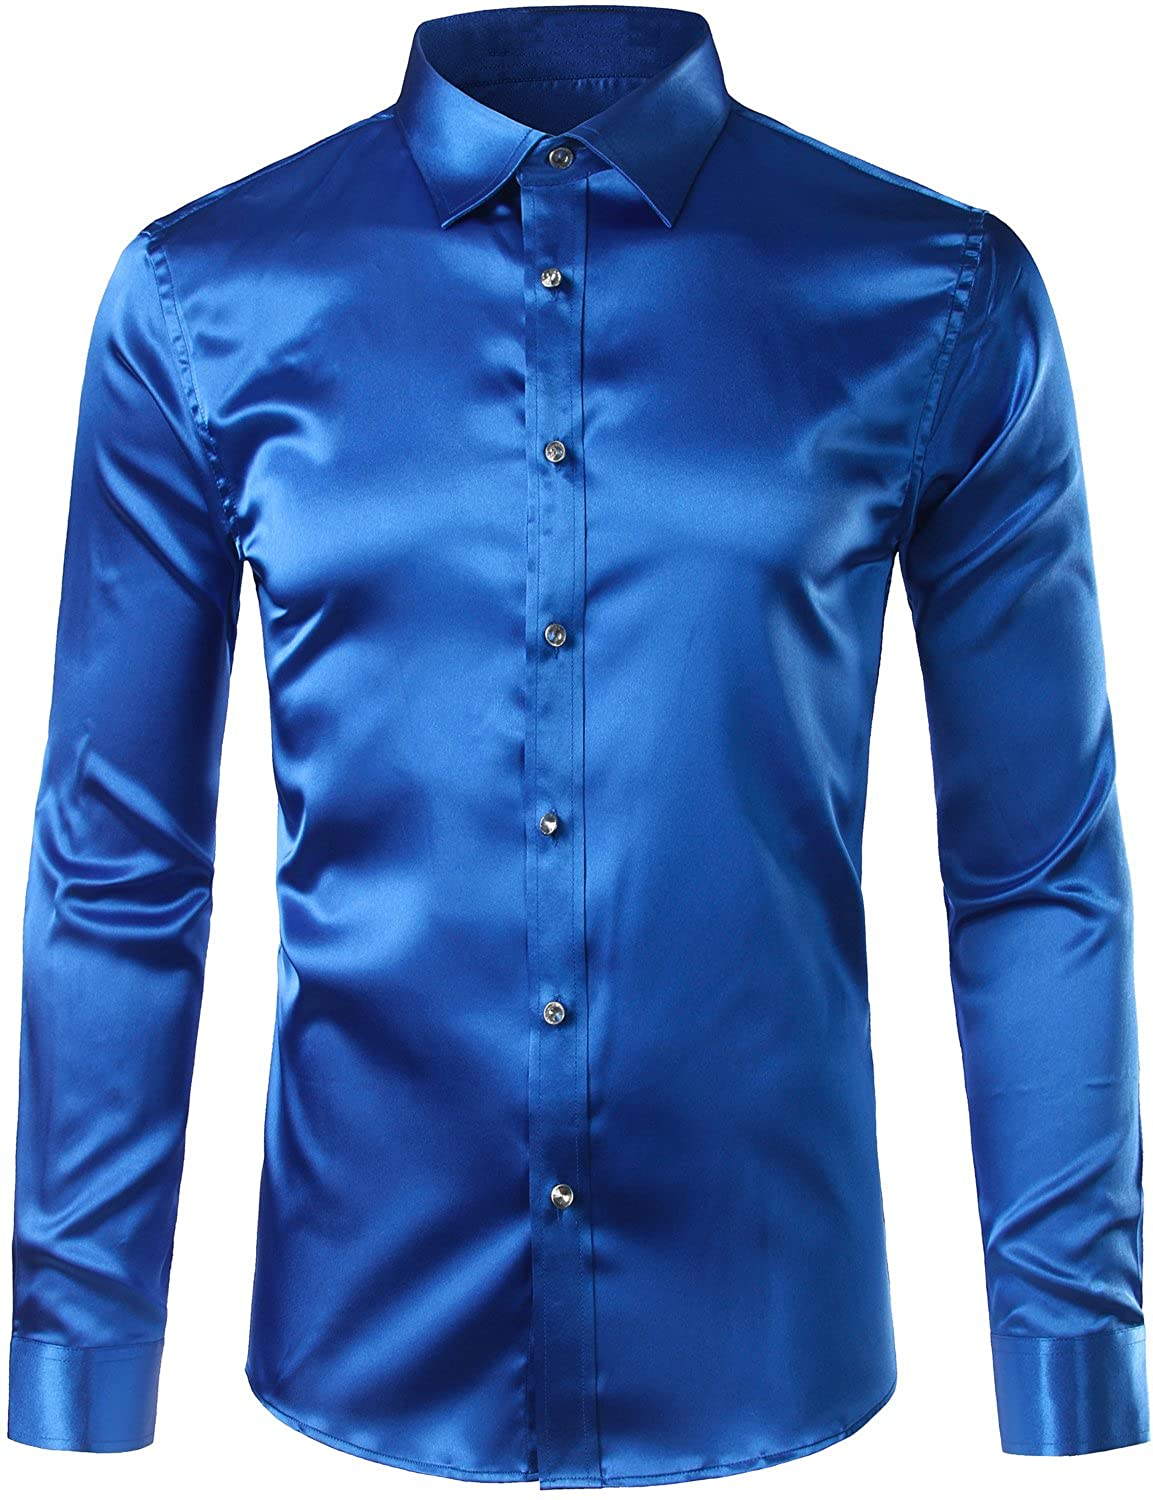 1960s Inspired Fashion: Recreate the Look Zeroyaa Mens Solid Color Casual Slim Fit Long Sleeve Shiny Satin Prom Dress Shirt Tops  AT vintagedancer.com